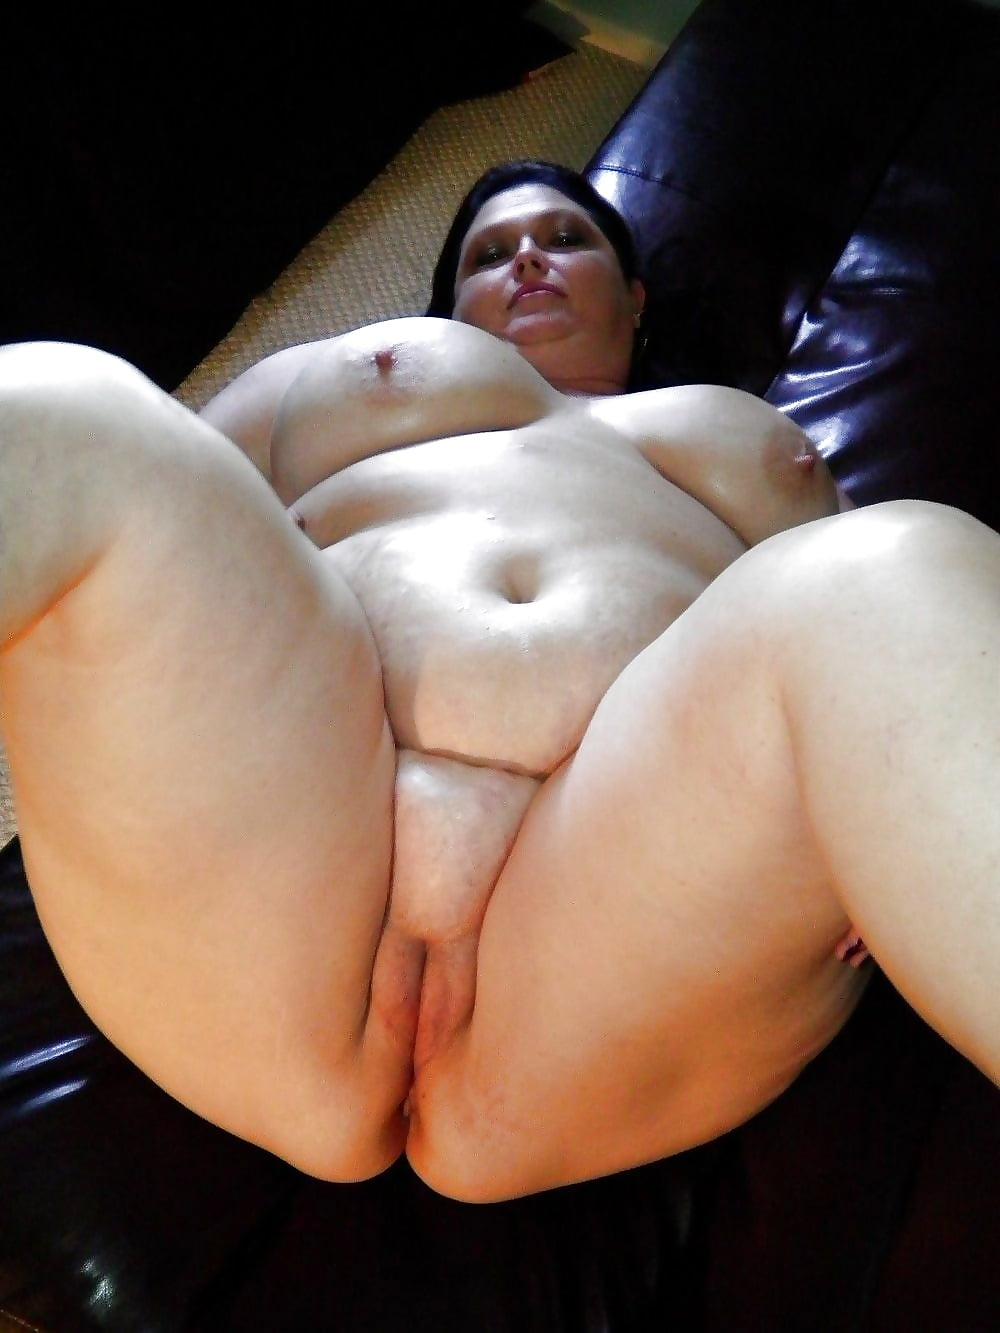 Best fat thick porn, naked group art